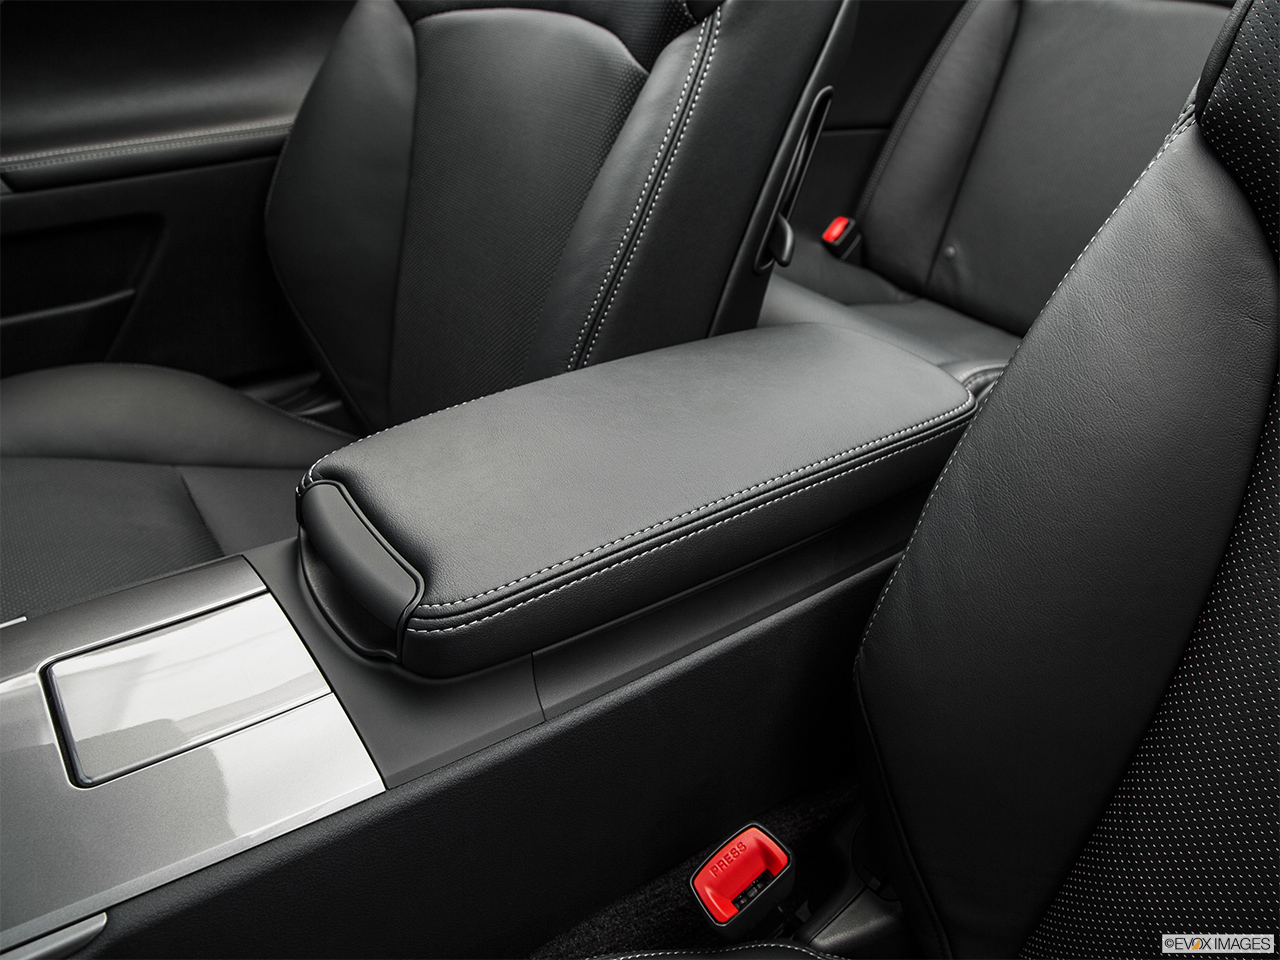 2015 Lexus IS C IS250 RWD Front center console with closed lid, from driver's side looking down